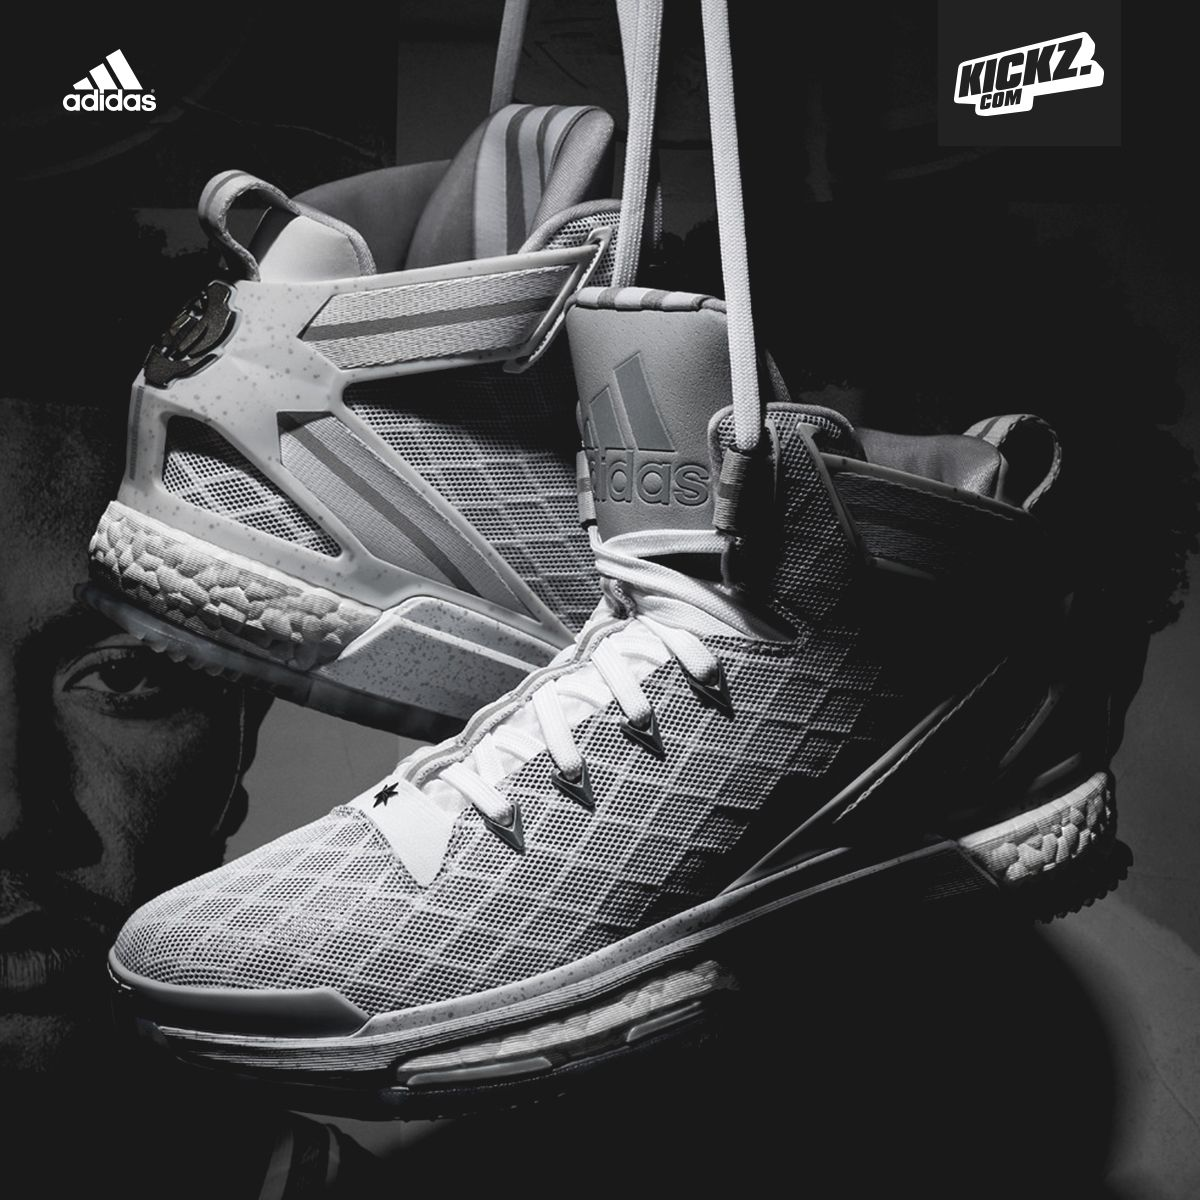 8b7ec7635a5f The Adidas D Rose 6 Boost is Derrick Rose s new weapon!